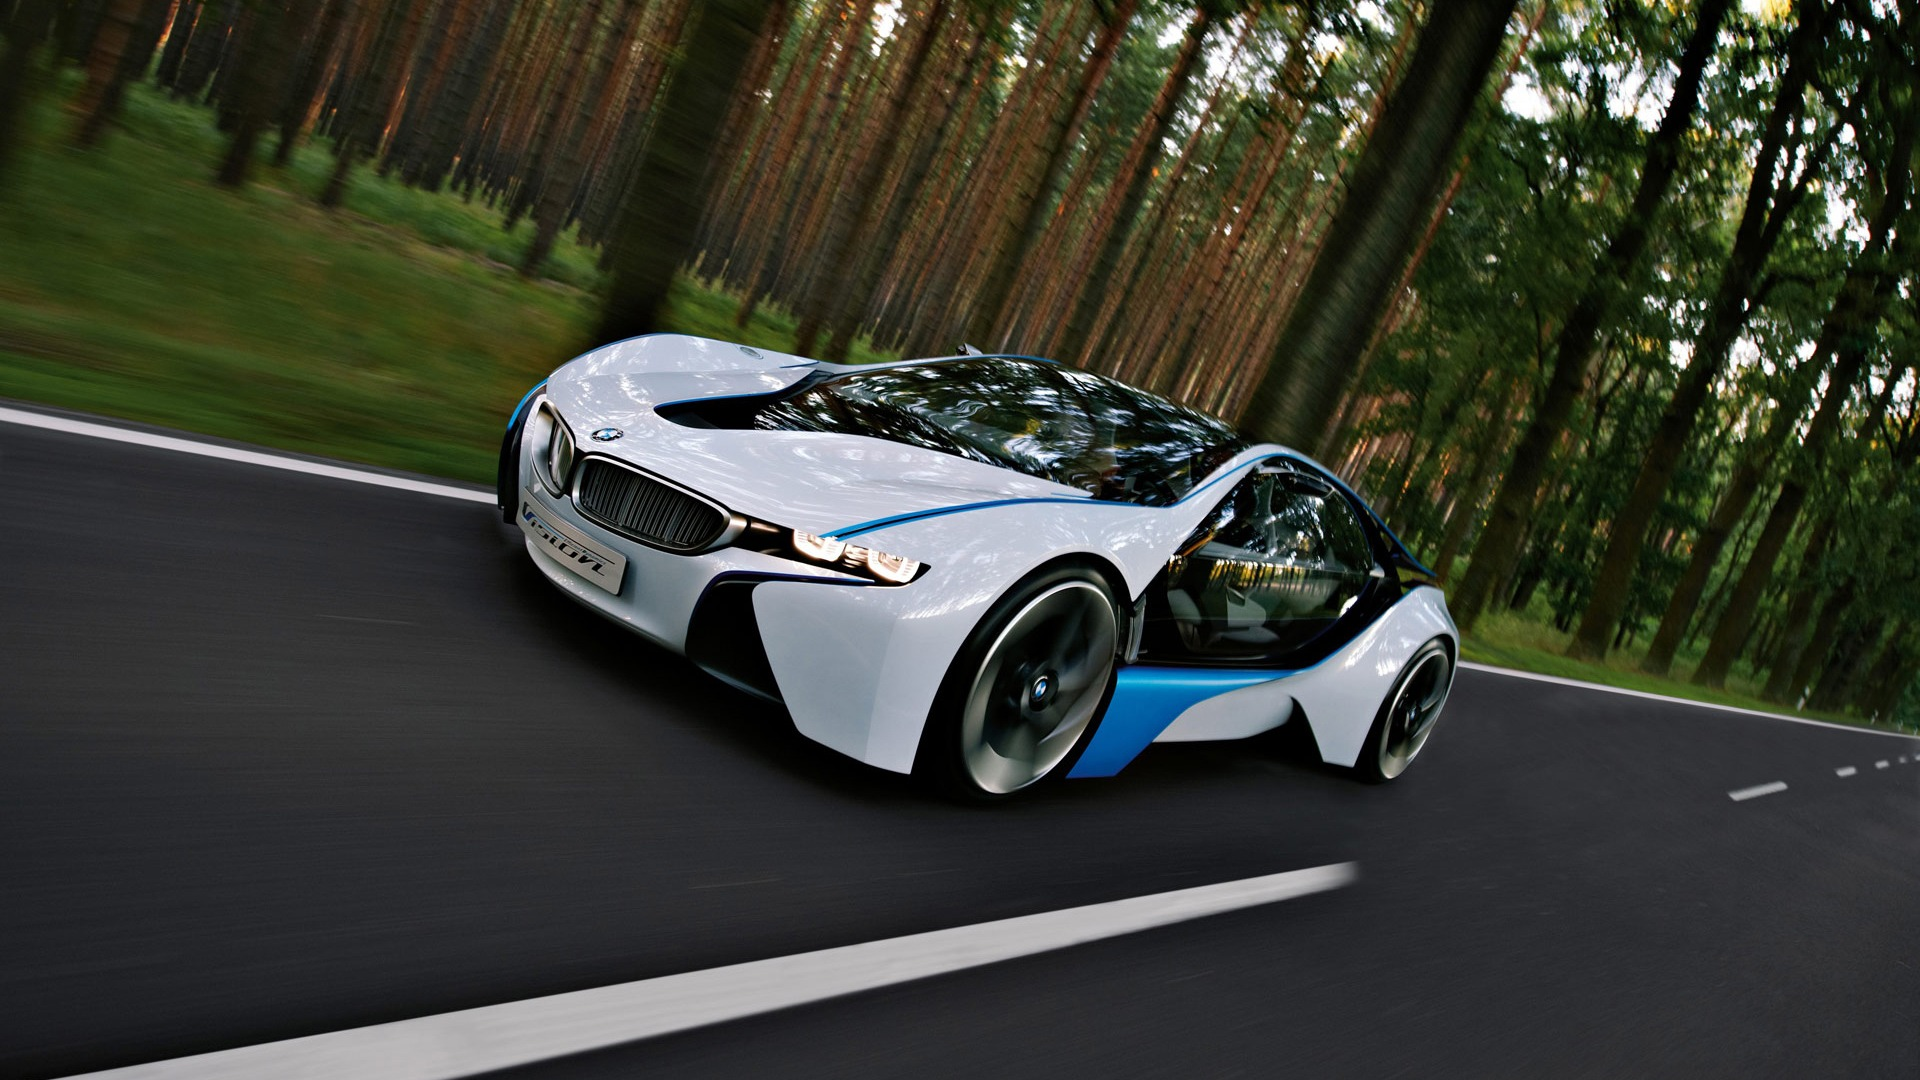 BMW Vision Wallpaper BMW Cars Wallpapers